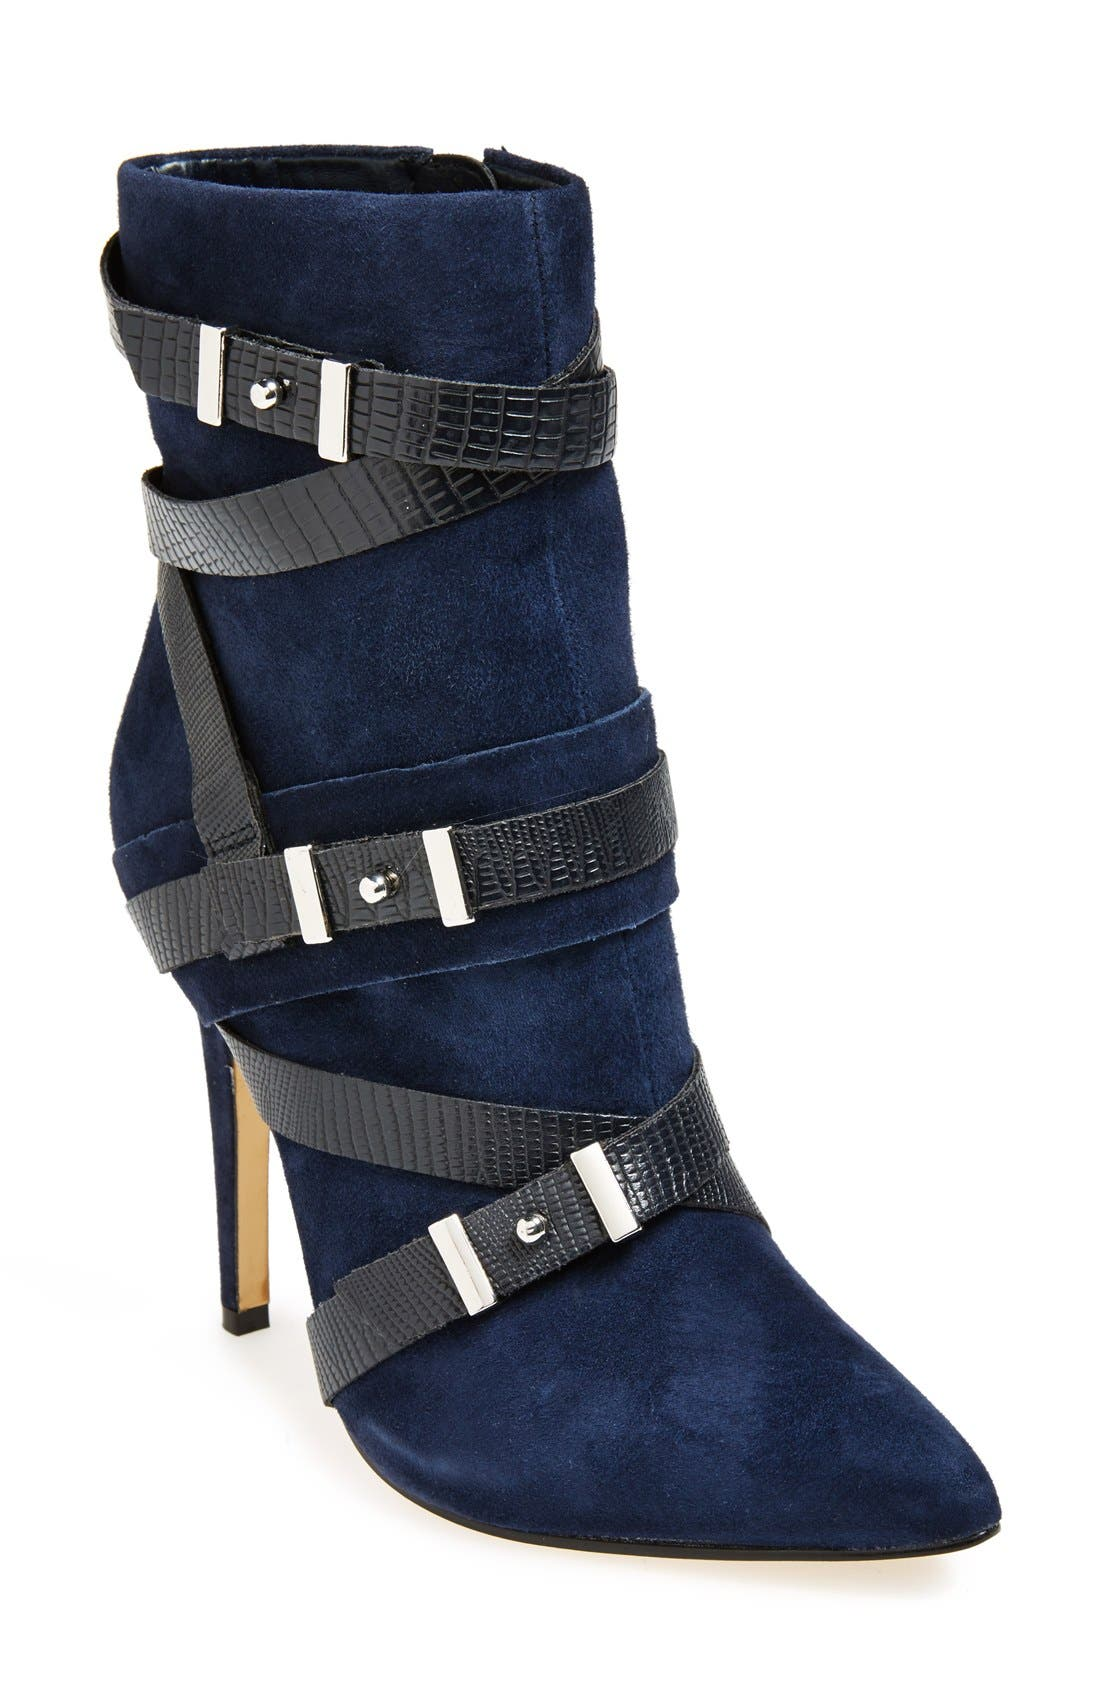 Alternate Image 1 Selected - GUESS 'Parley' Pointy Toe Bootie (Women)